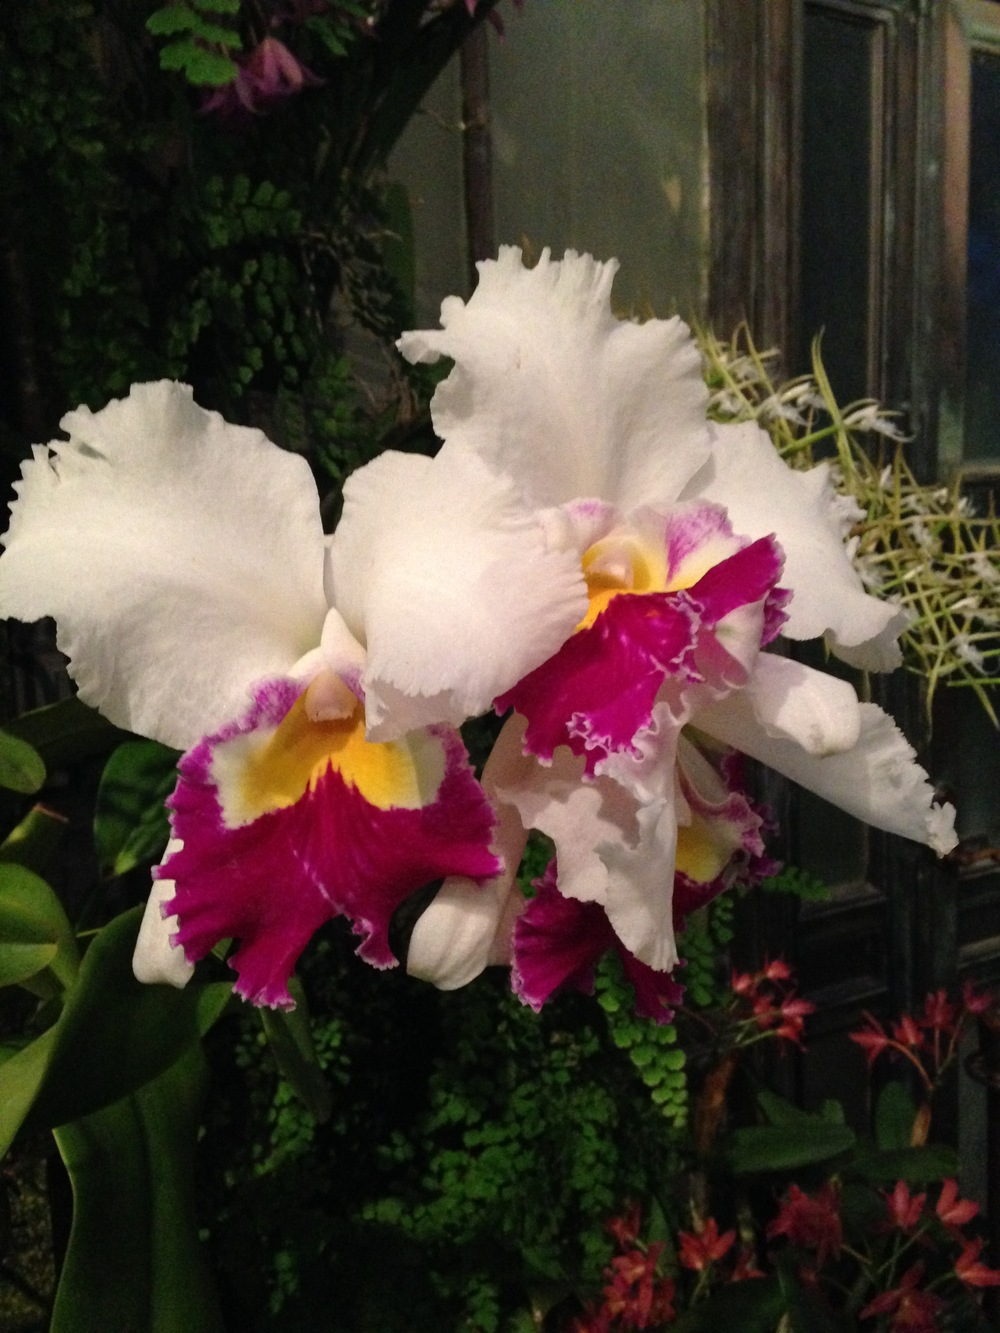 Orchids in full bloom, in the middle of winter.